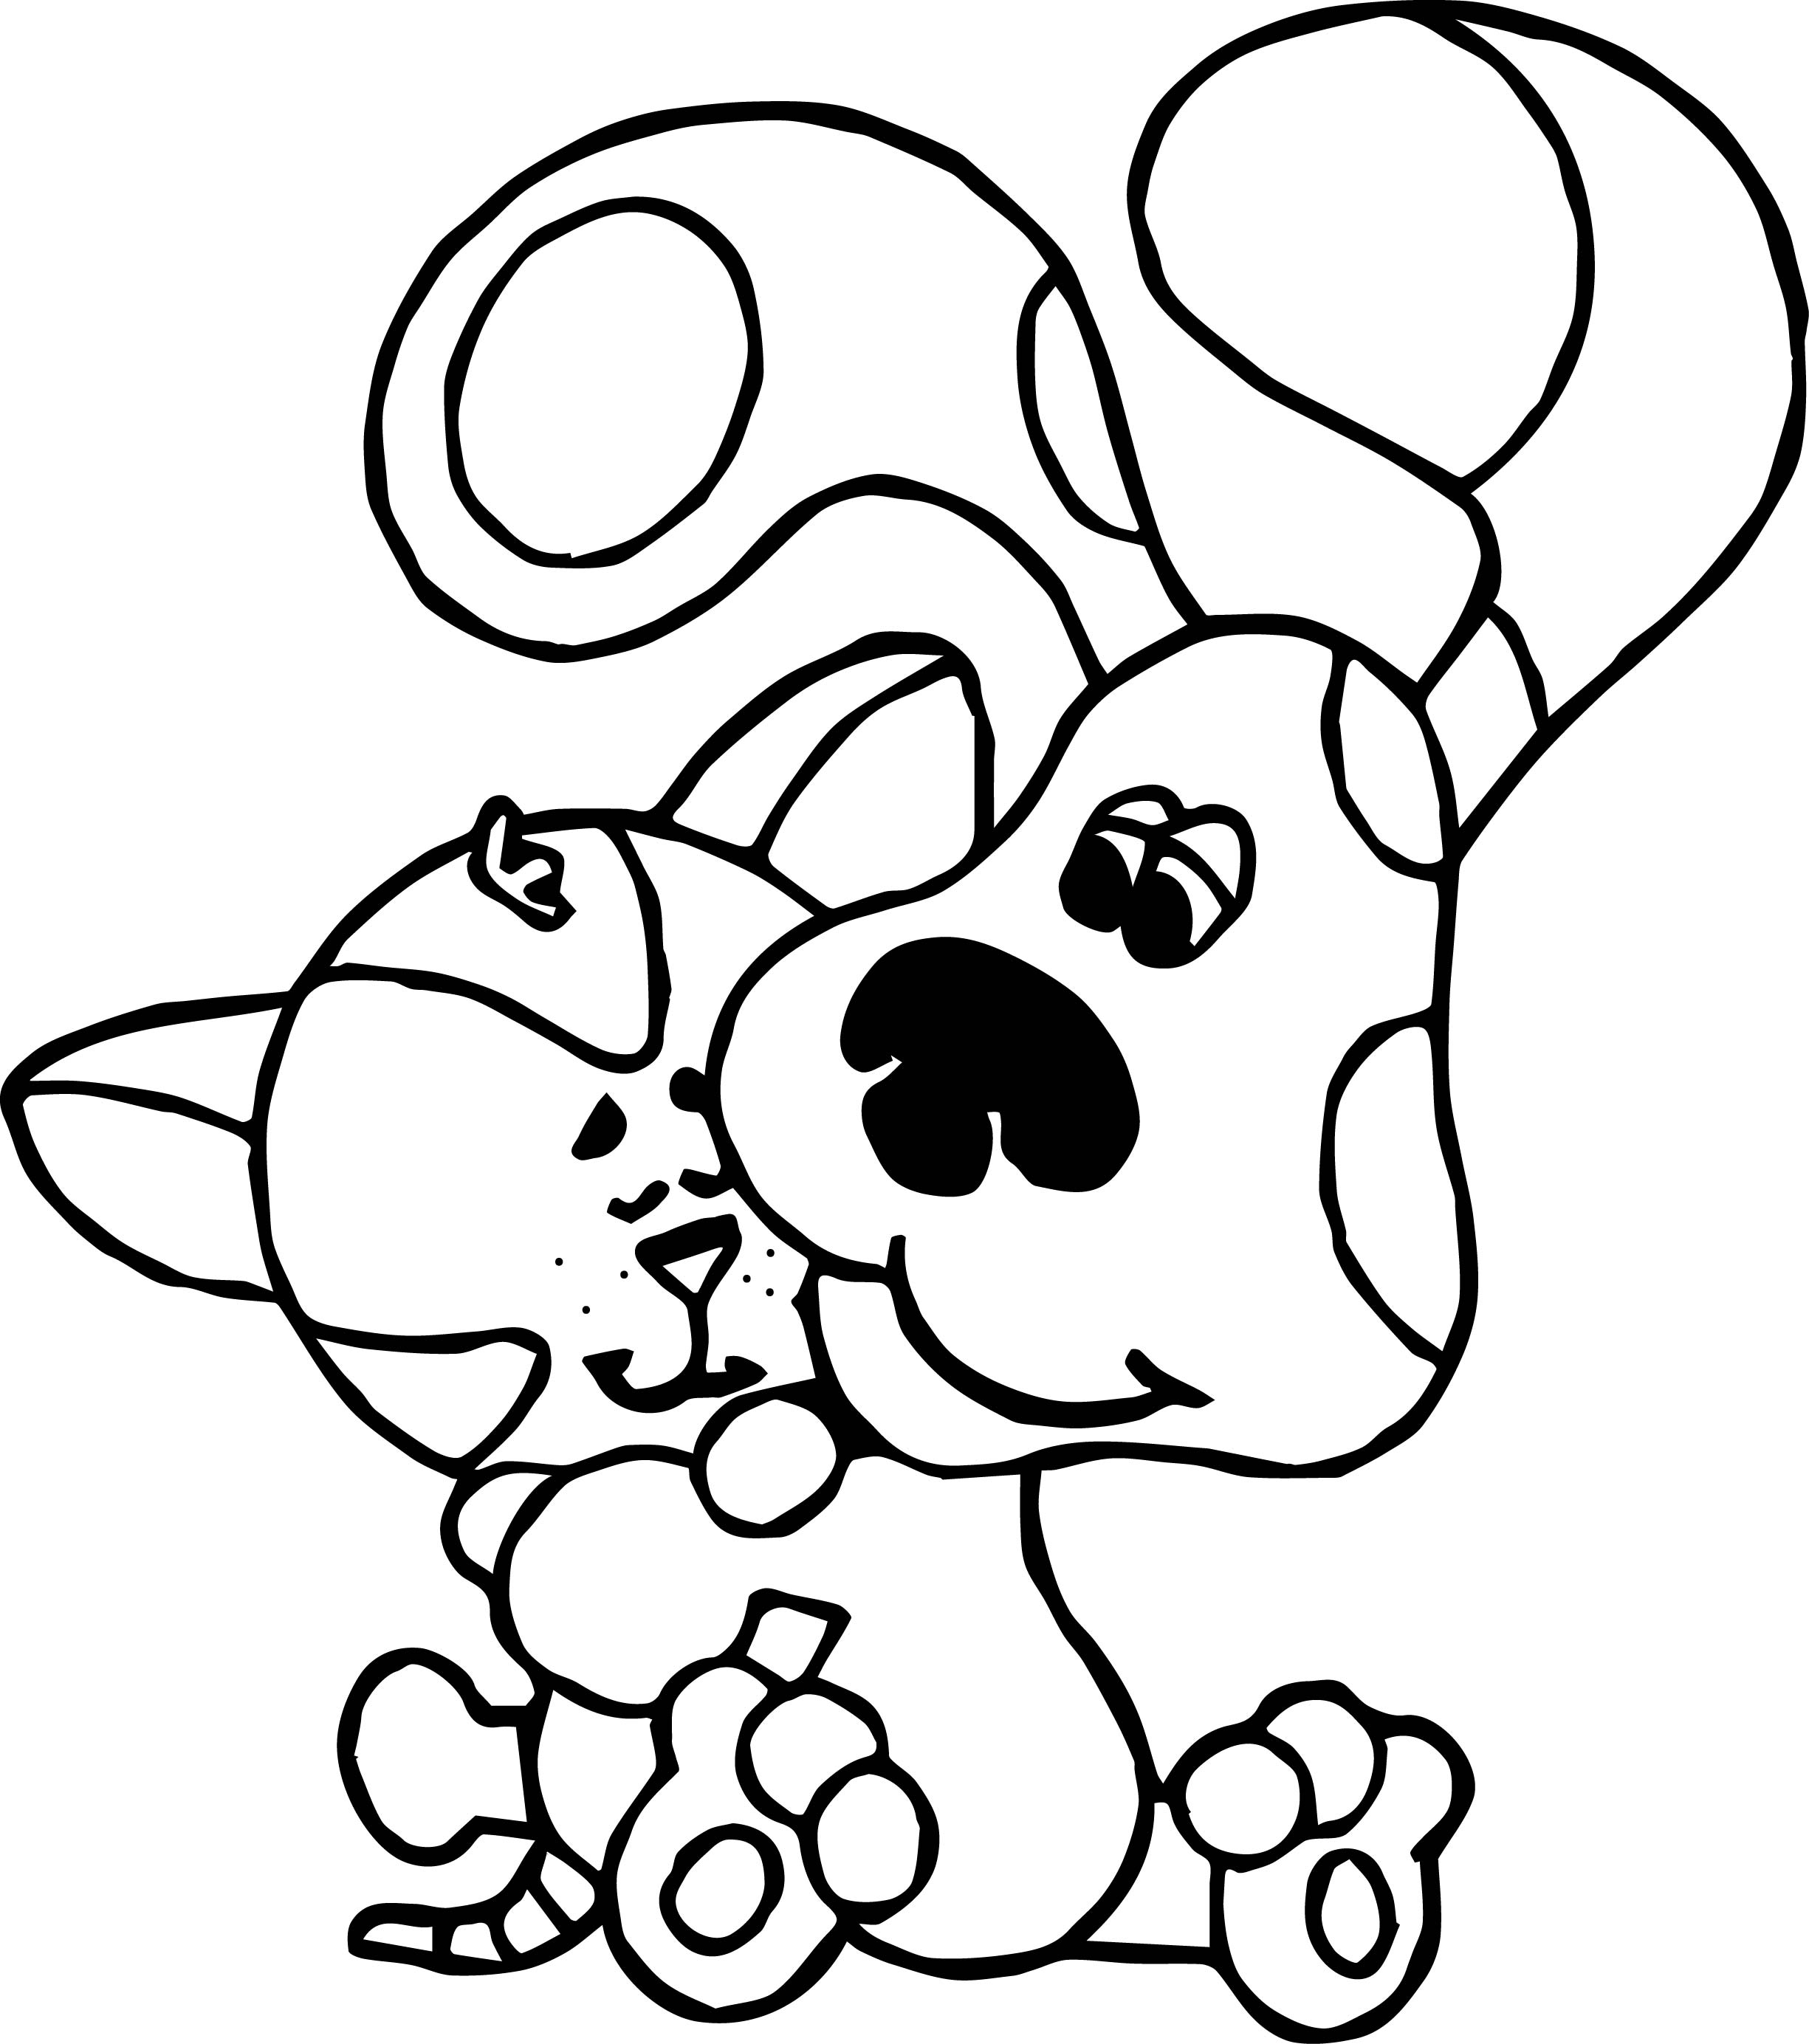 Blues Clues Coloring Pages Blue's Clues Dog And Cat Coloring Page  Wecoloringpage